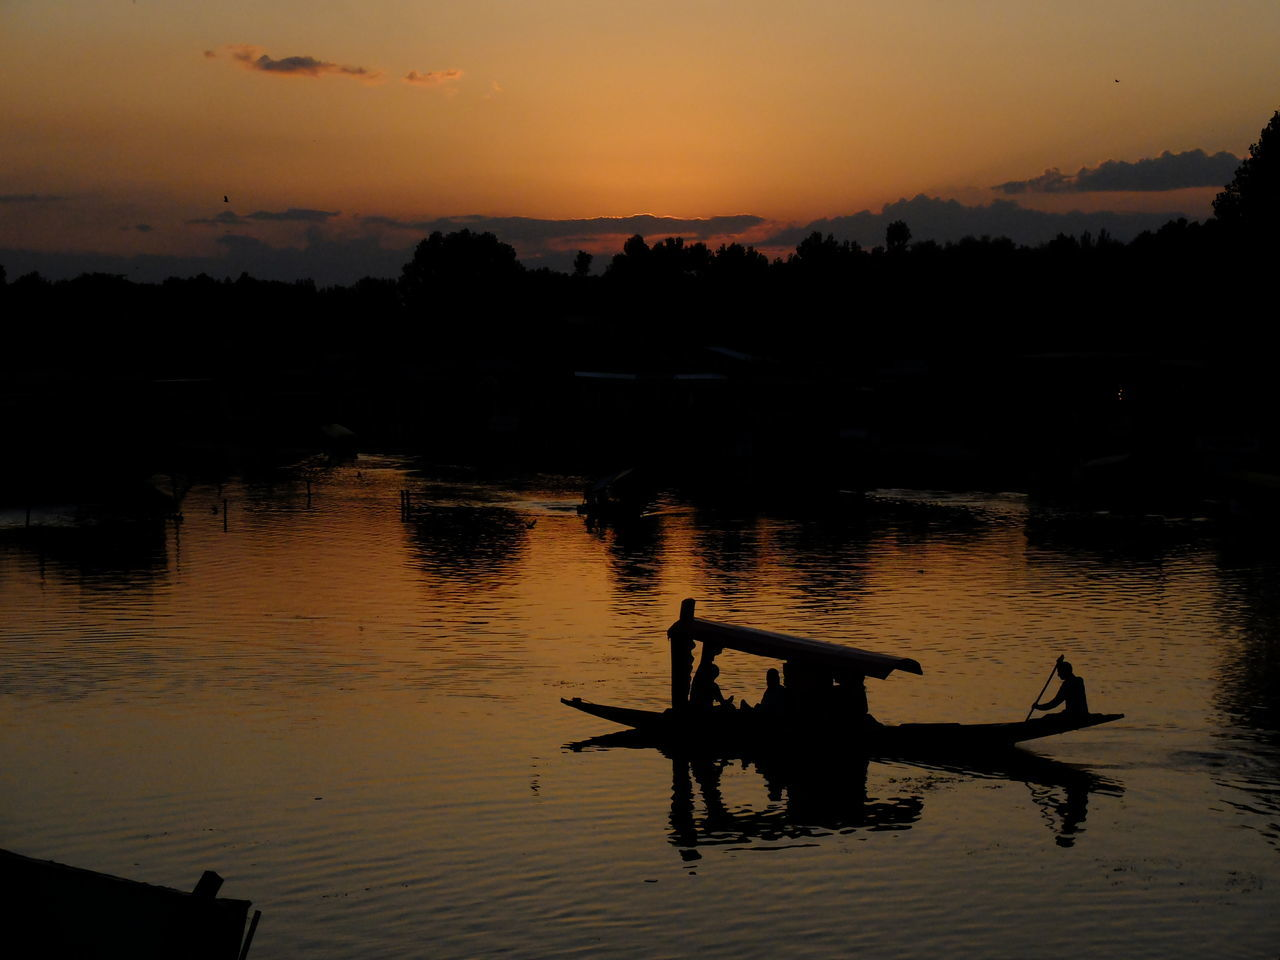 sunset, silhouette, water, nature, reflection, orange color, beauty in nature, outdoors, scenics, lake, tranquility, real people, sky, tree, waterfront, nautical vessel, men, two people, oar, rowing, day, people